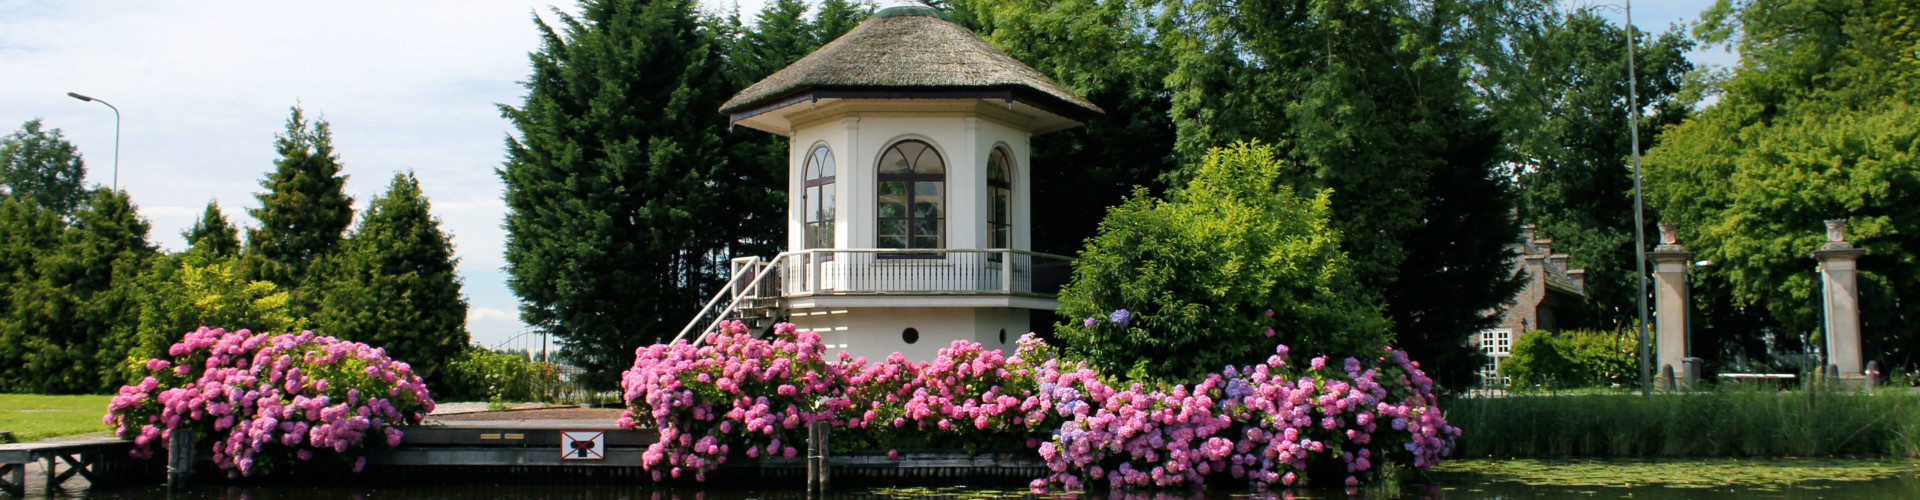 vecht-river-tea-house-surrounded-by-hydrangeas